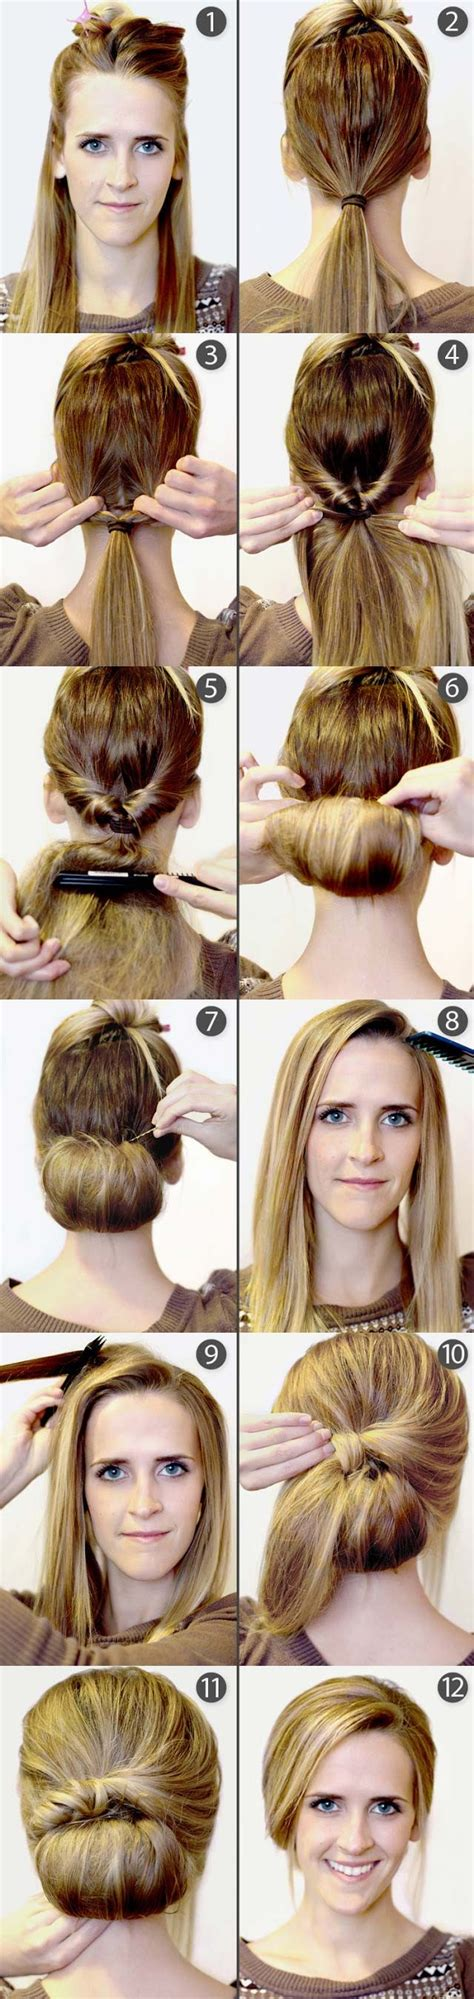 haircut for long hair step by step 15 cute hairstyles step by step hairstyles for long hair